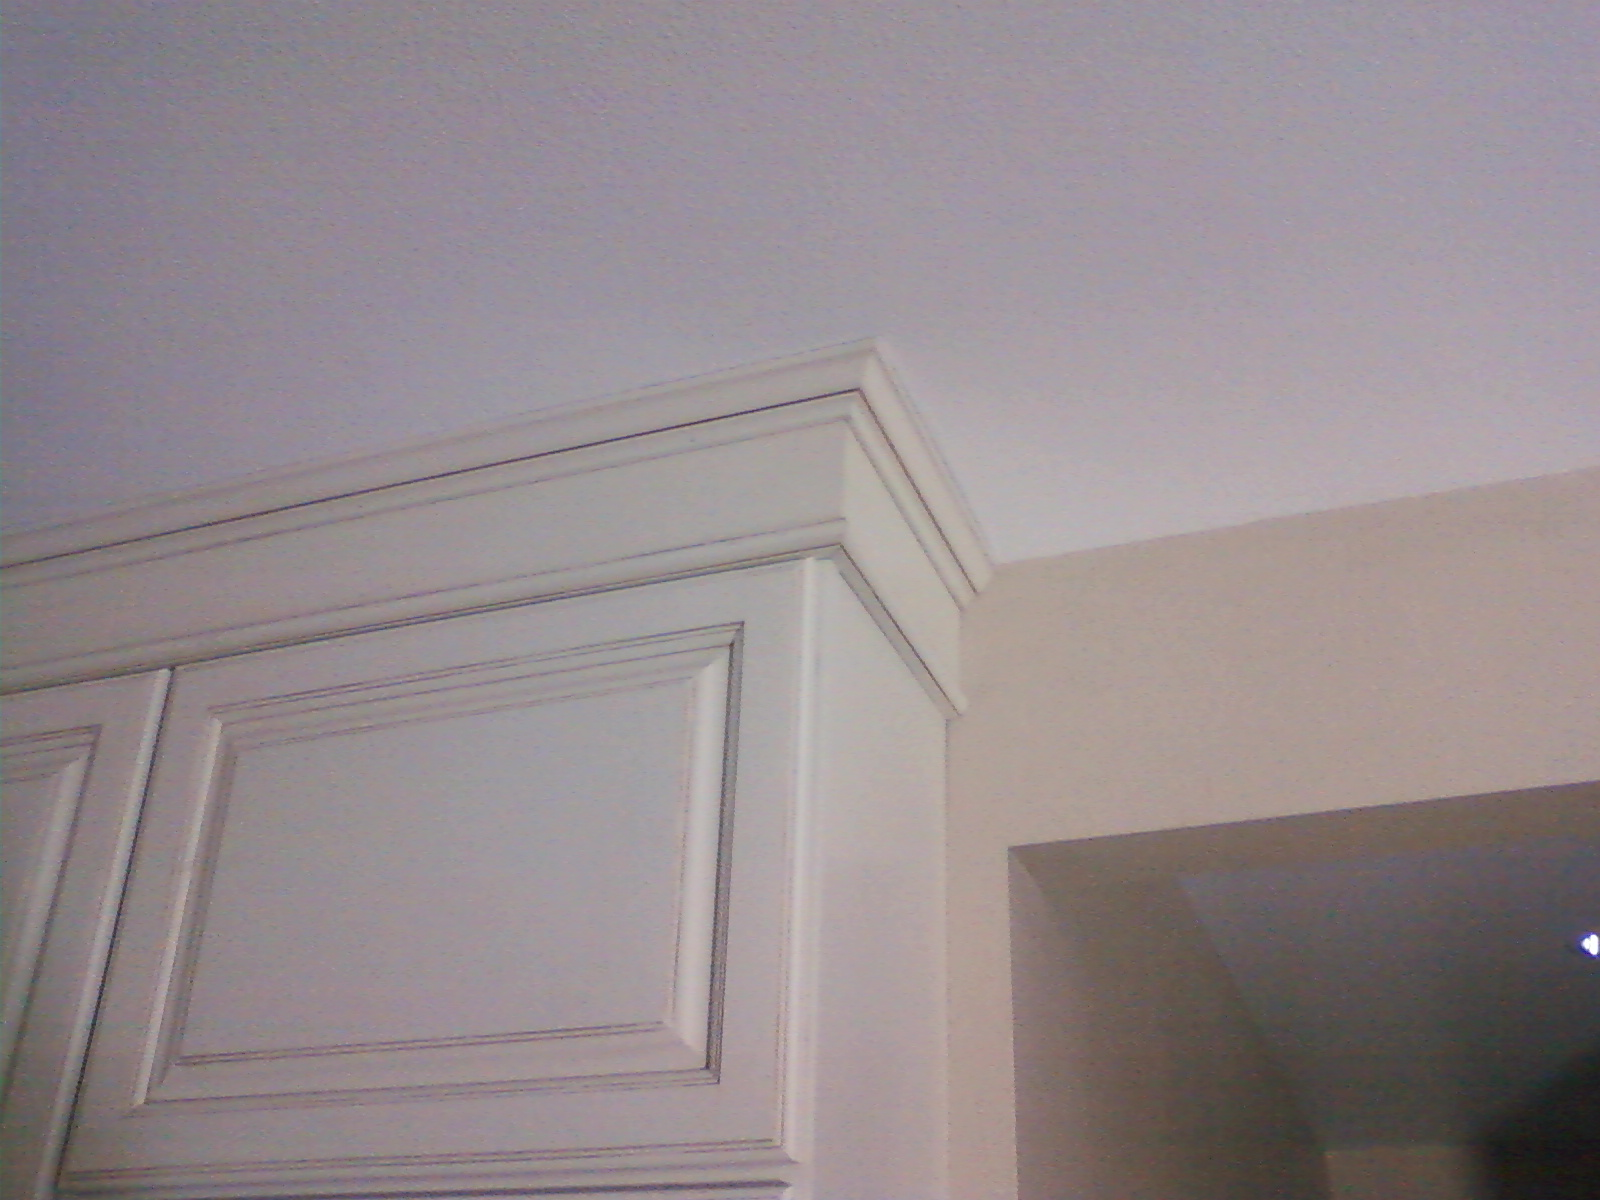 Multi-stack crown moulding